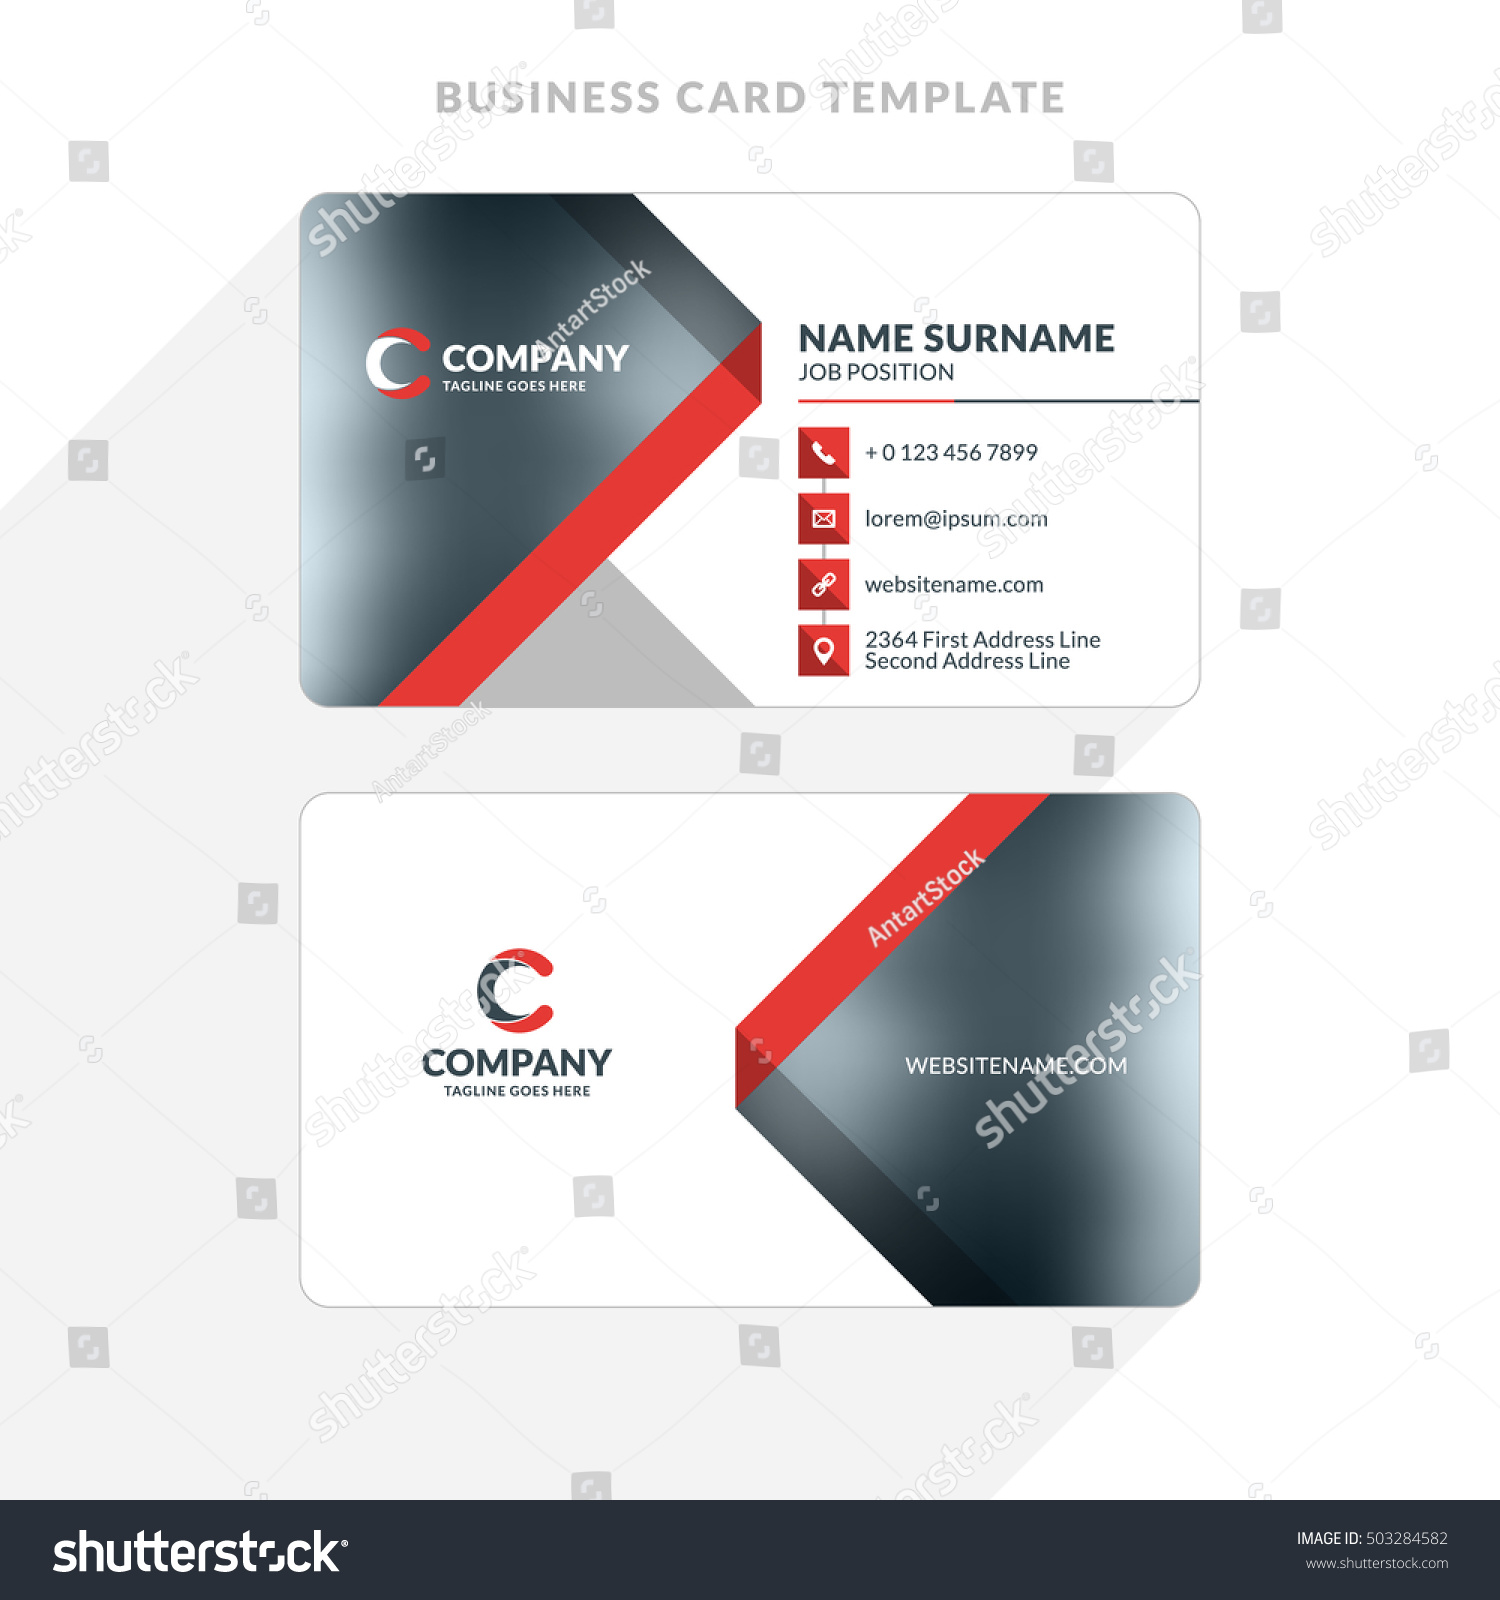 Sided Business Card Template Word Image Collections Templates - 2 sided business card template